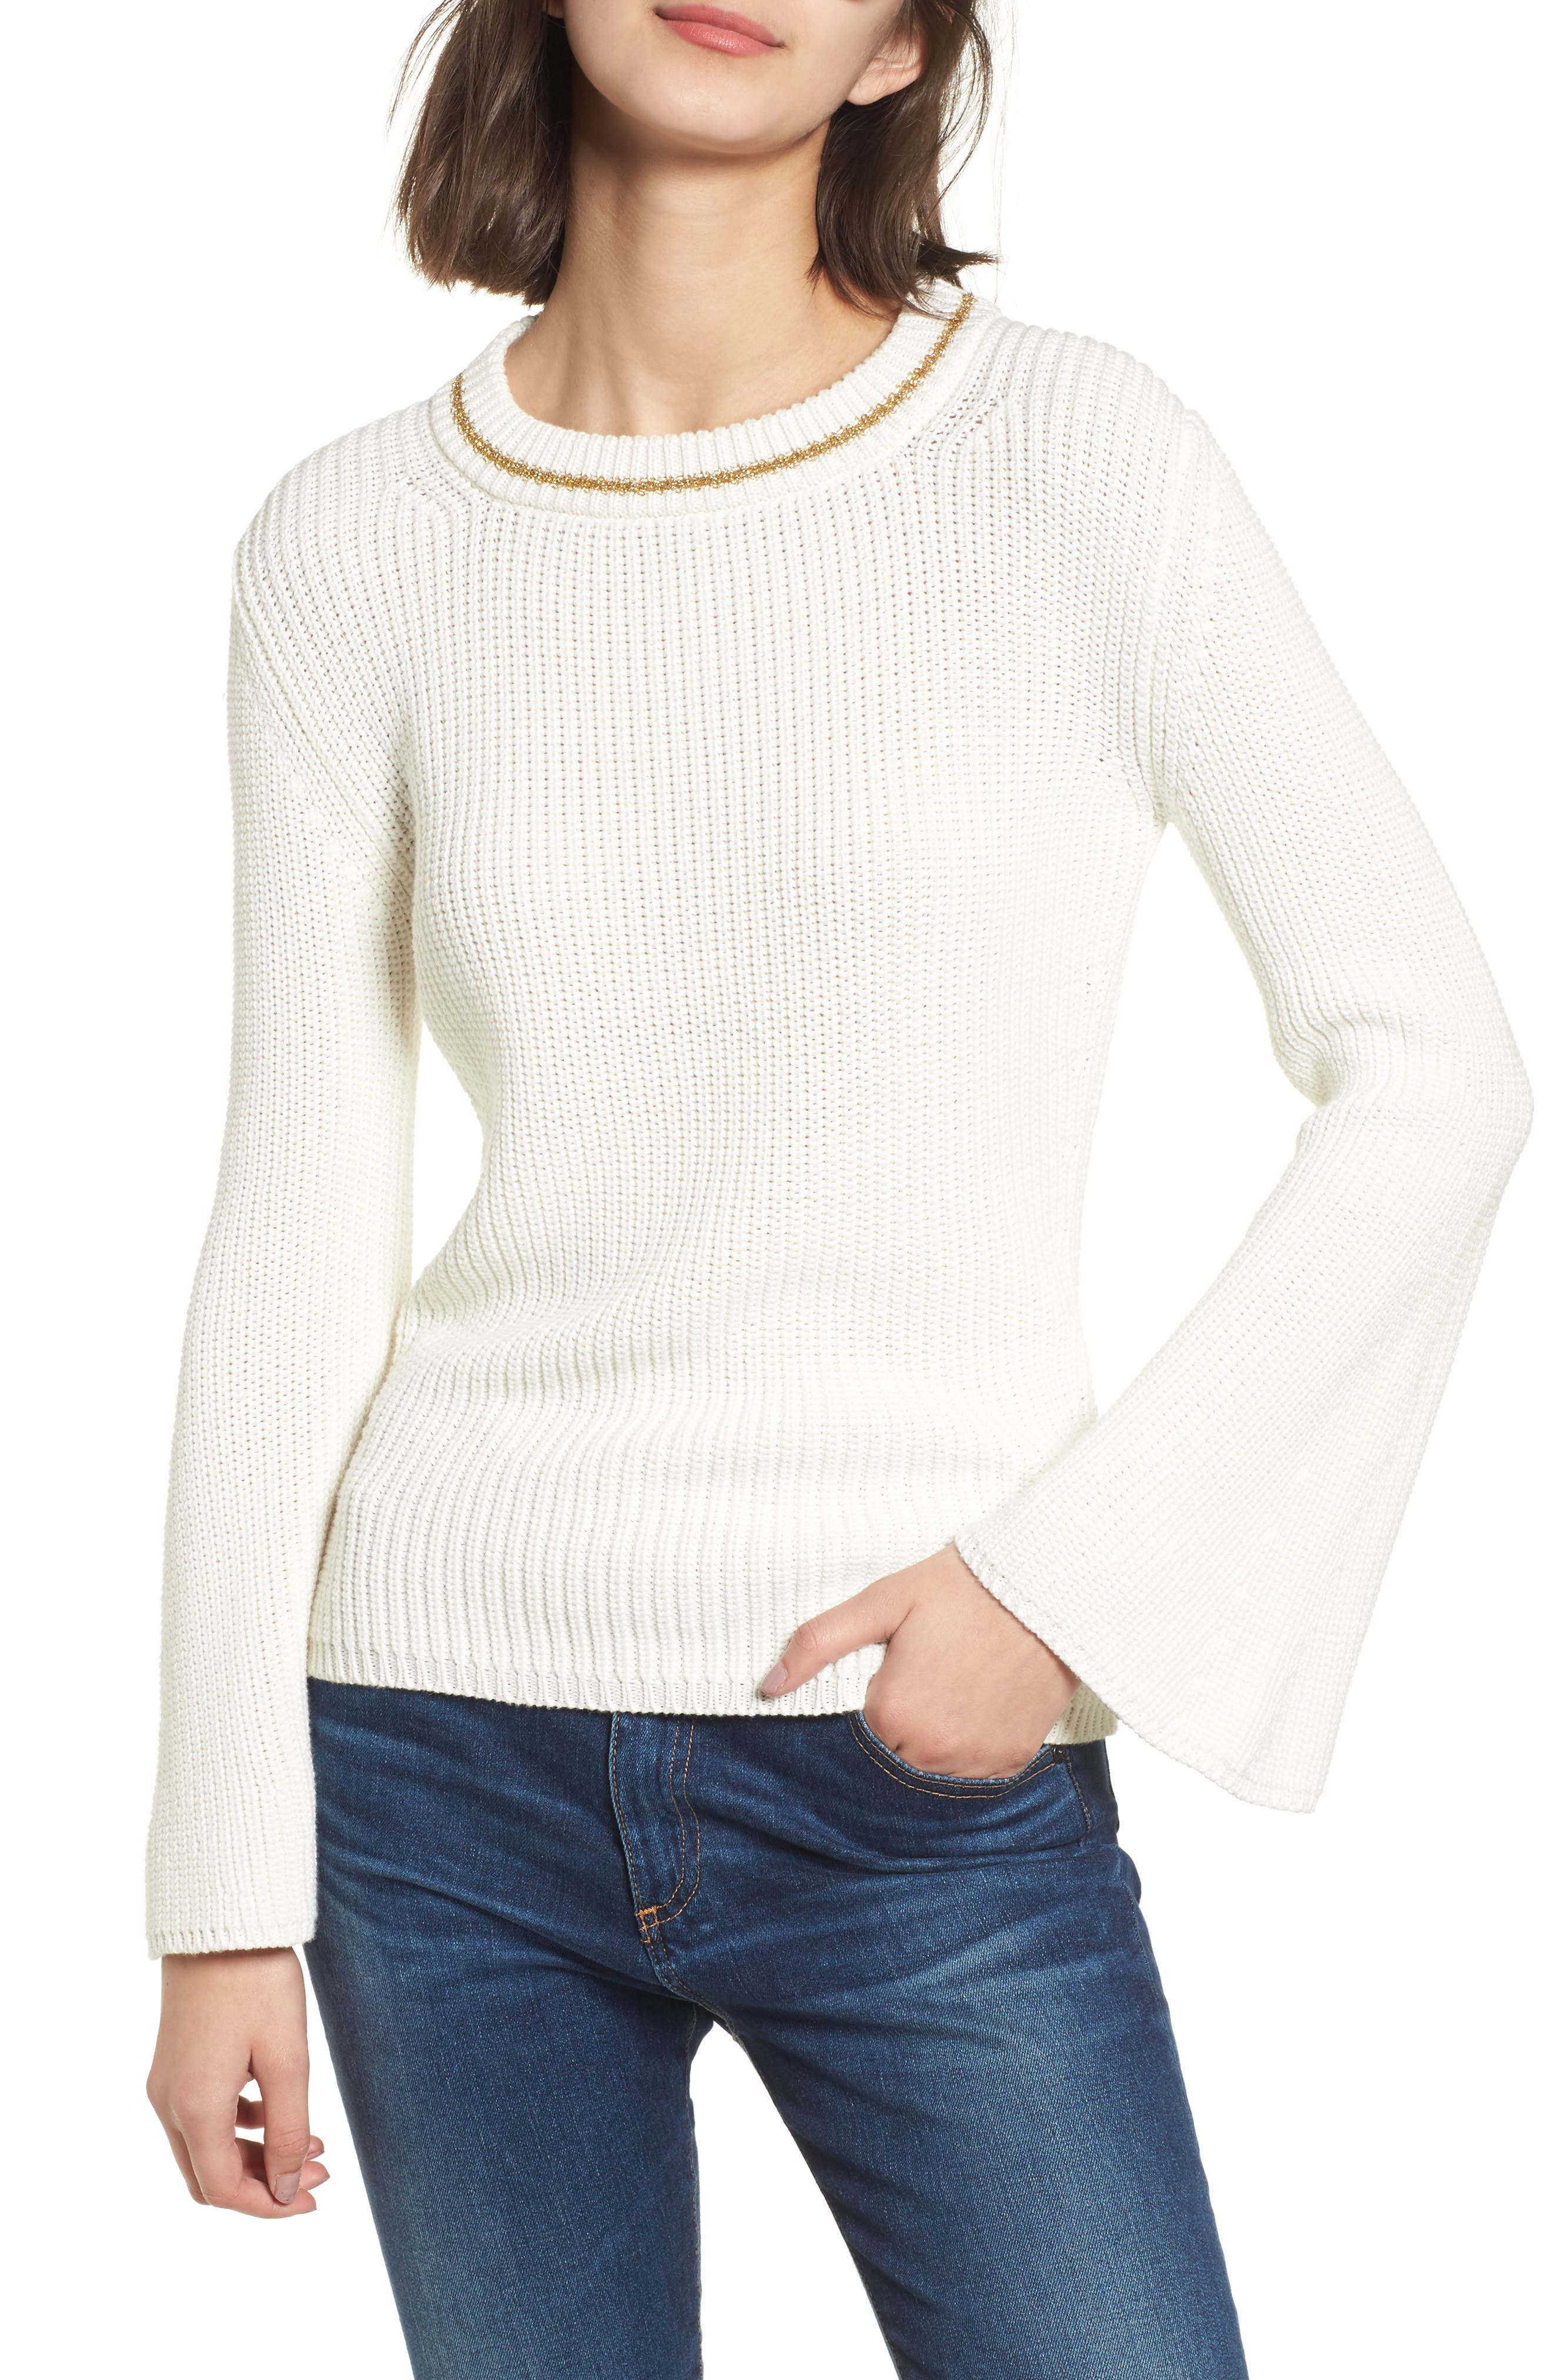 Coco Sweater,                             Main thumbnail 1, color,                             100